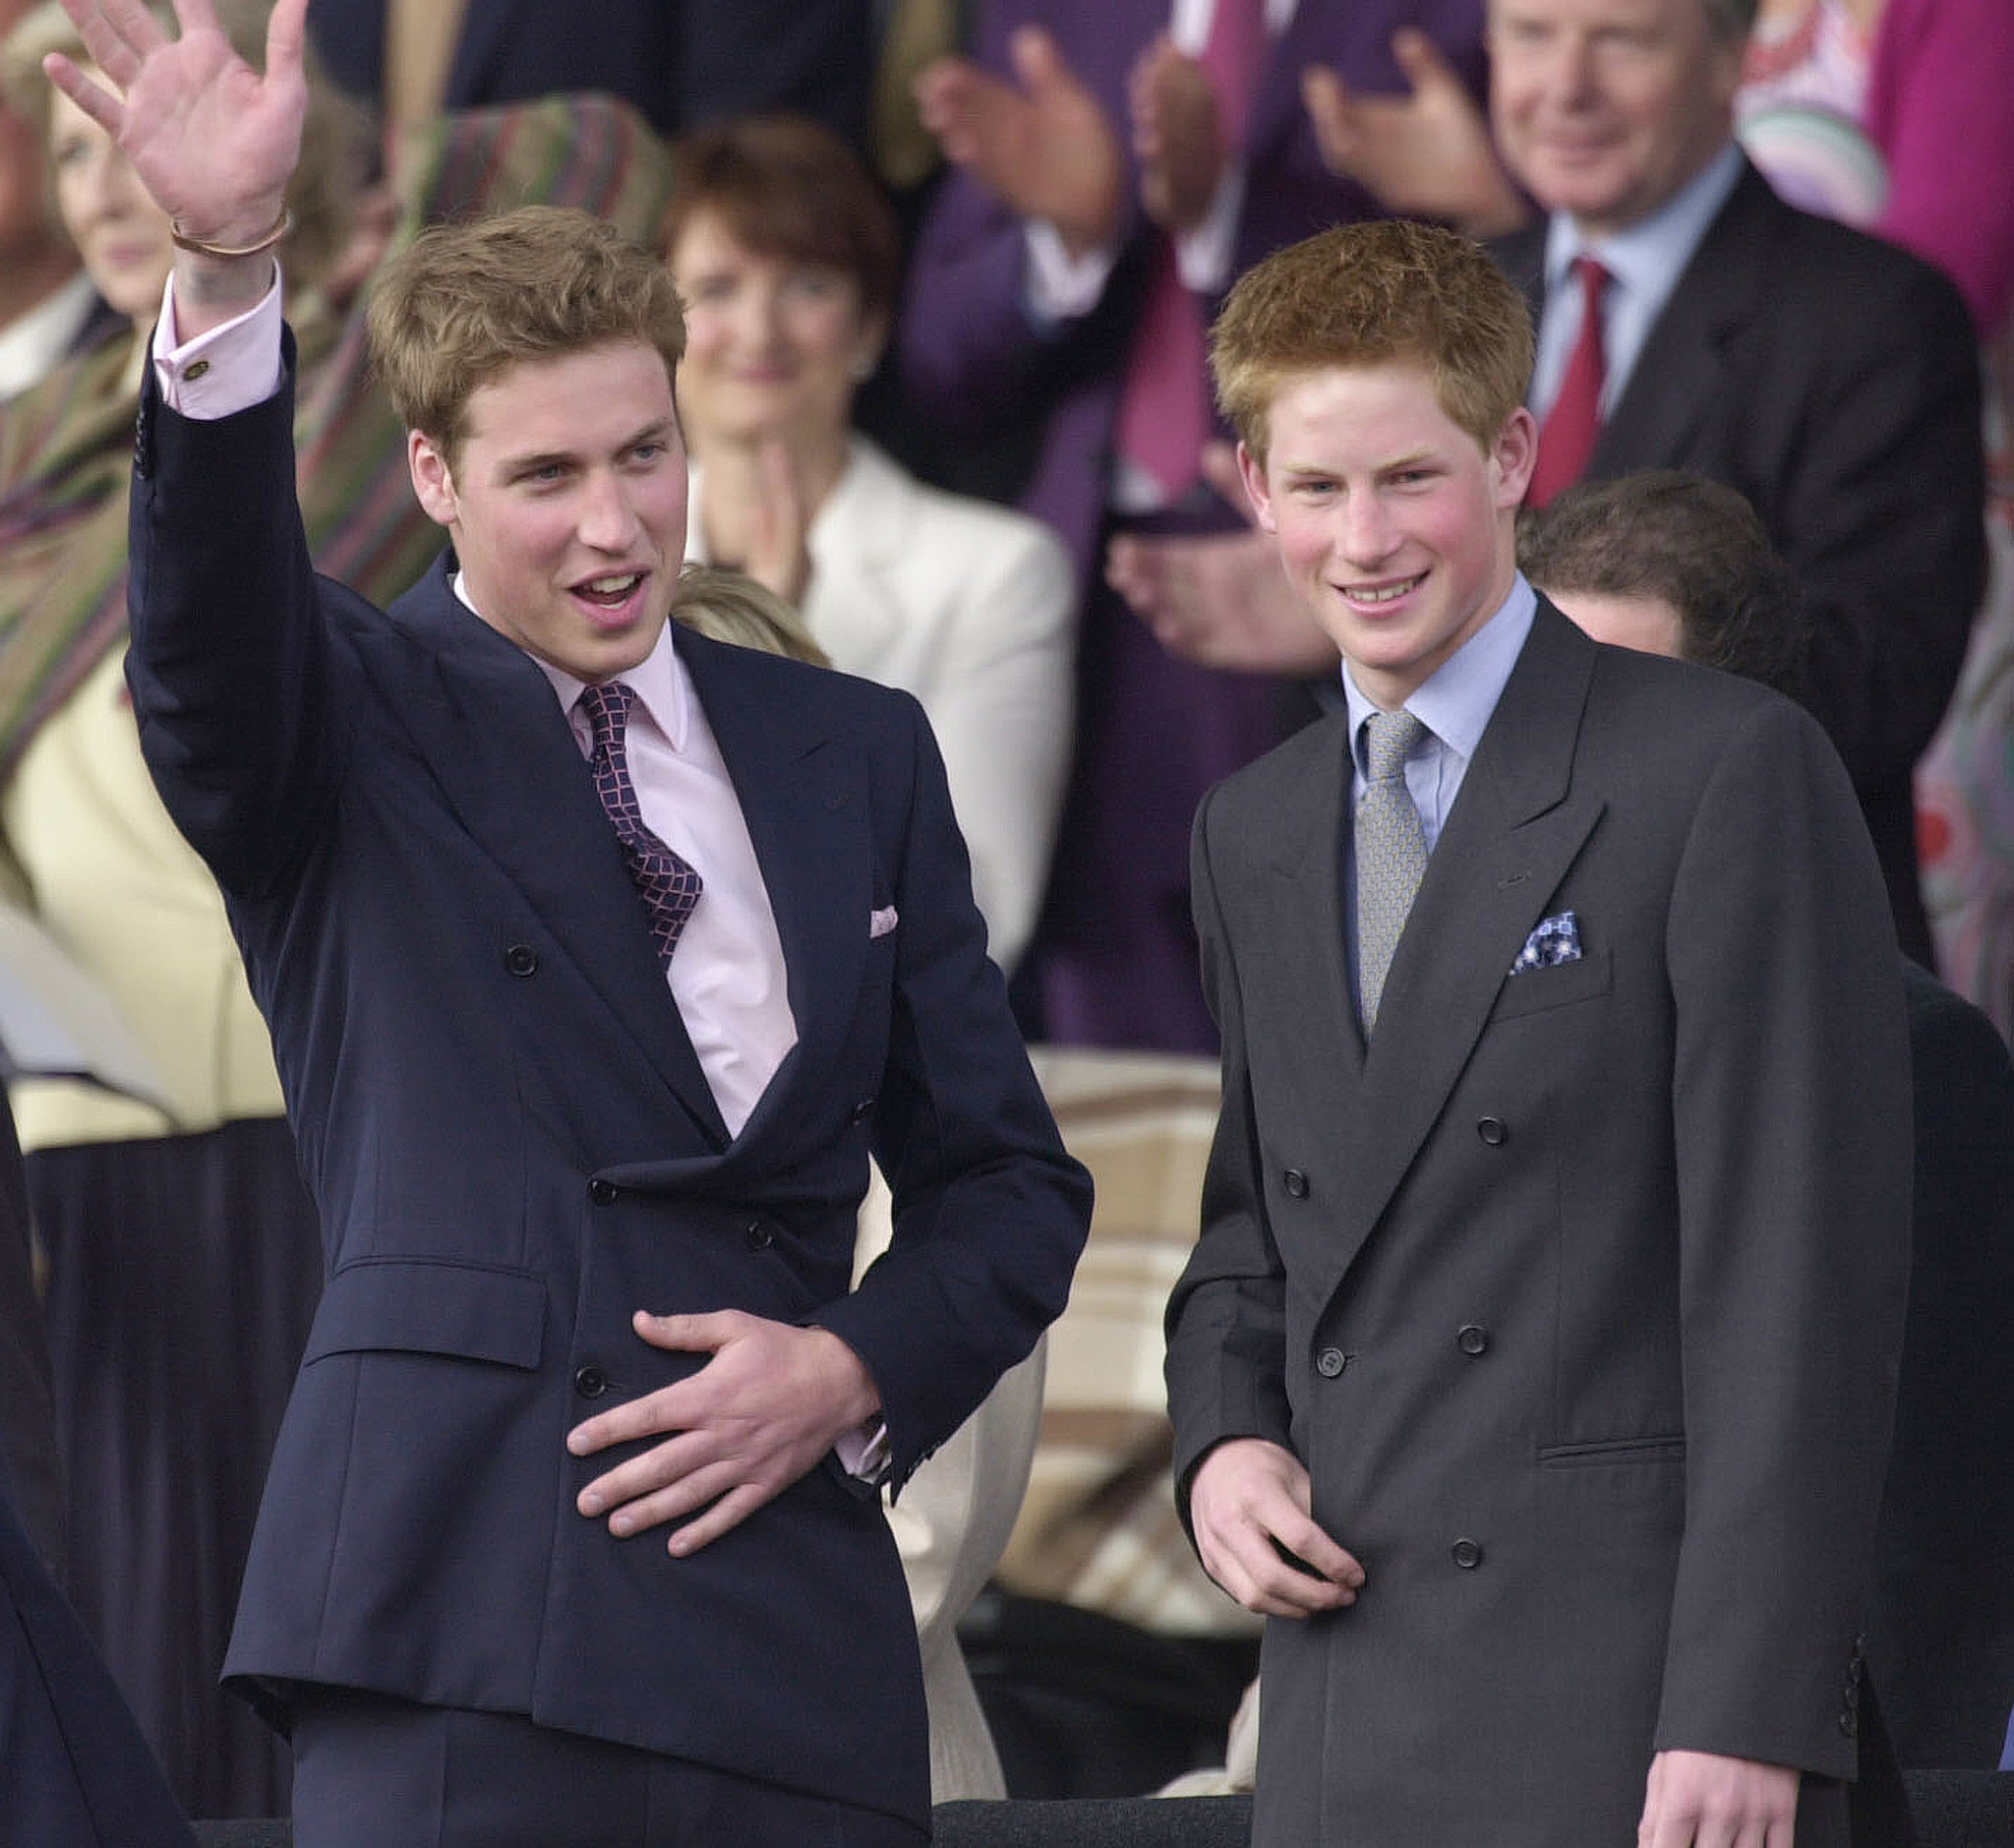 Prince Harry and Prince William waved to the crowd in the gardens of Buckingham Palace in 2002.